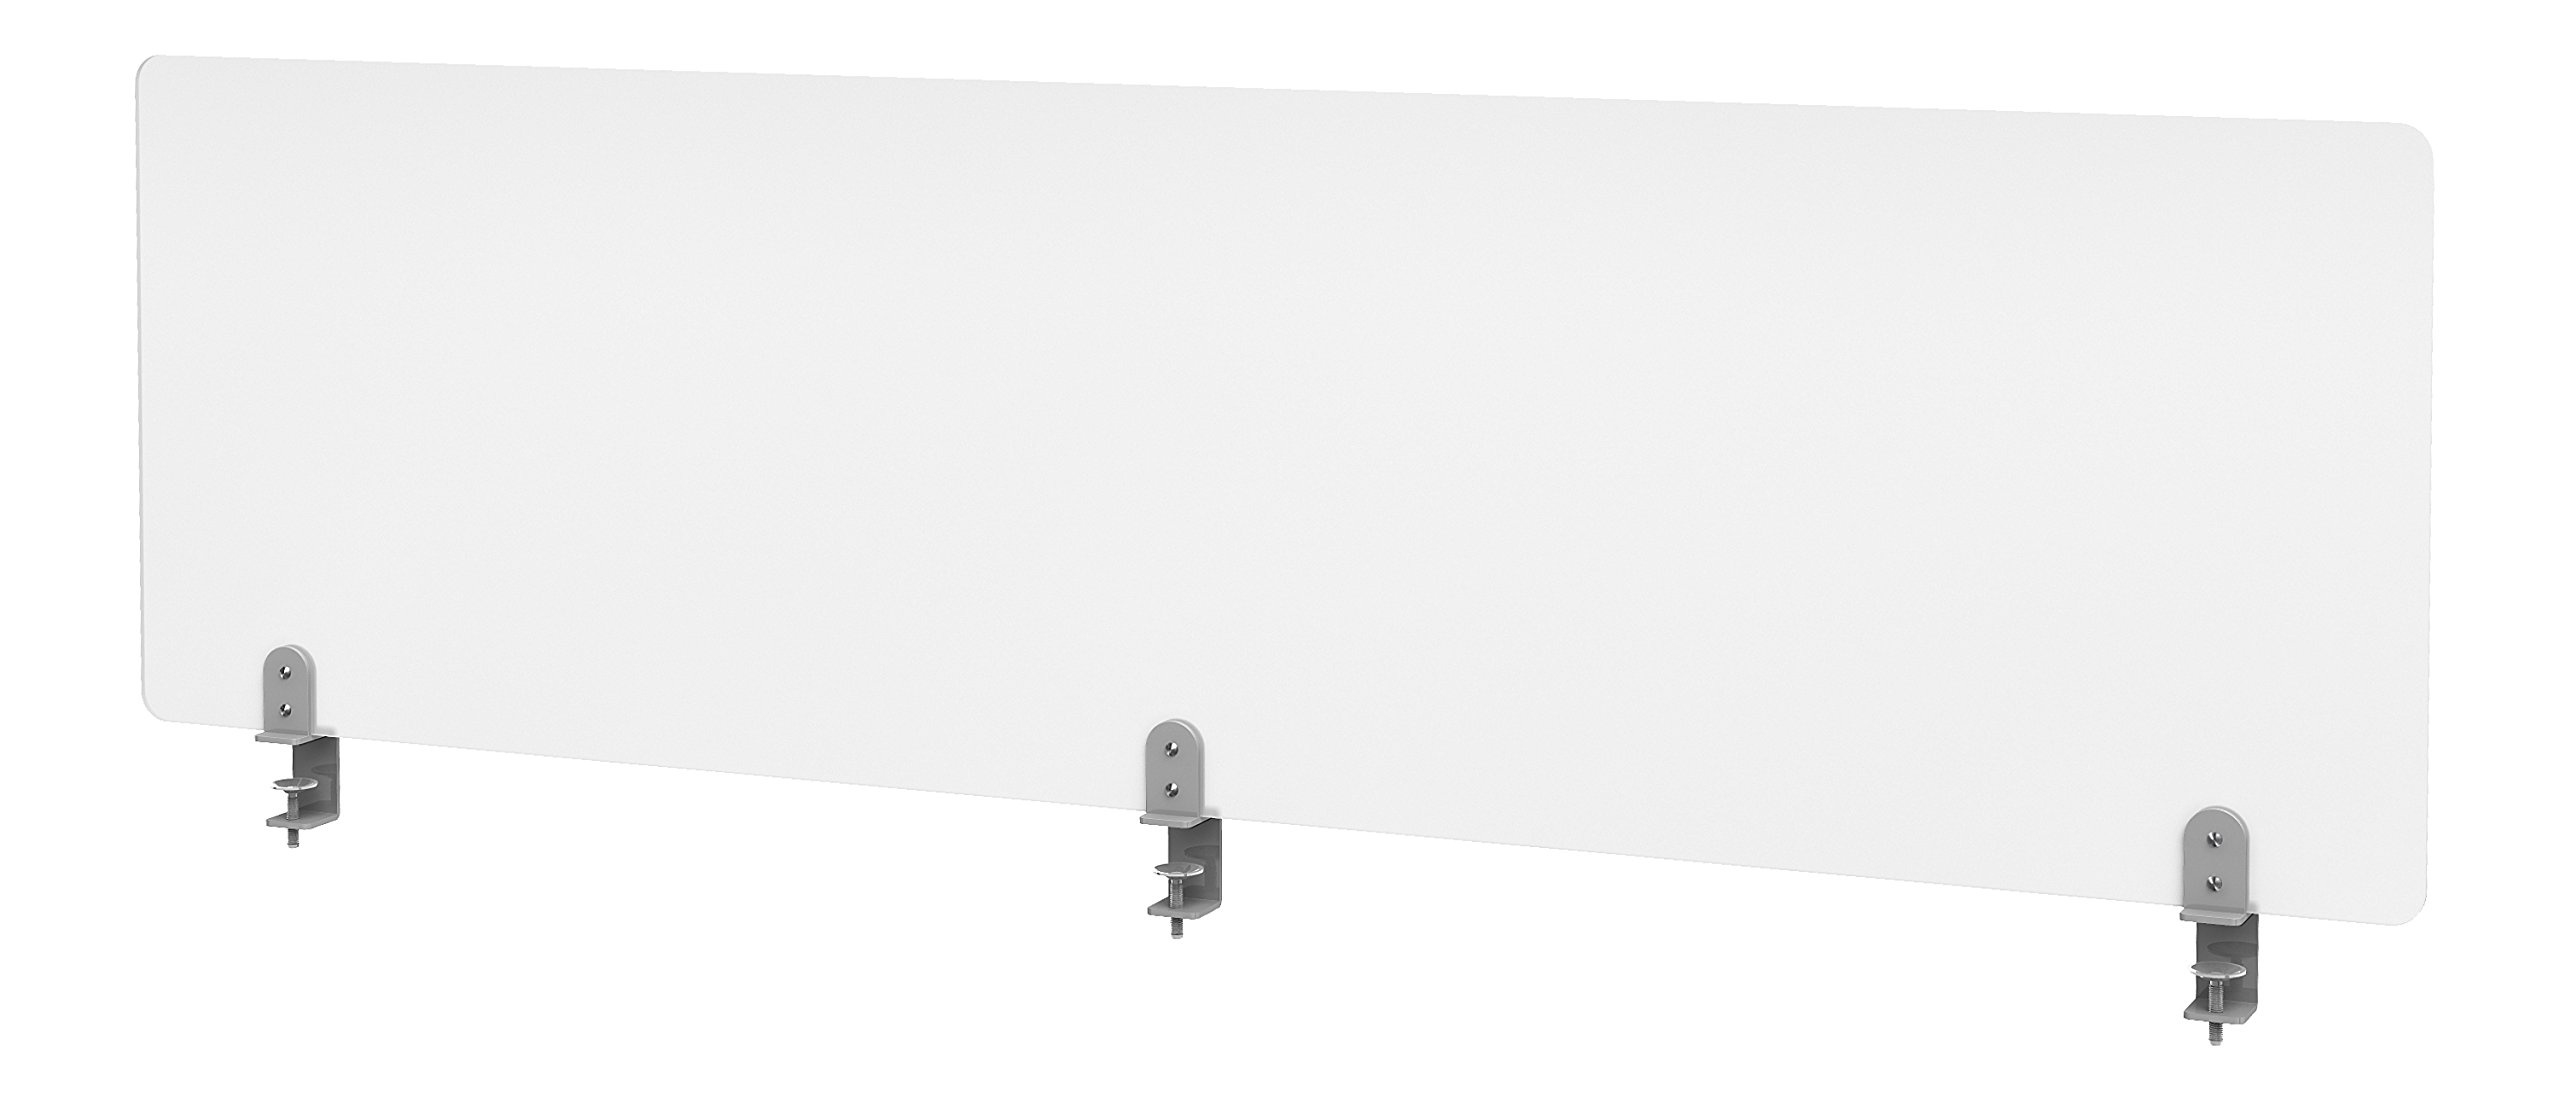 "VaRoom Studio Panel Desktop Privacy Panel – Frosted Acrylic Clamp-on Desk Divider –60"" W x 18""H Partition by VaRoom (Image #3)"